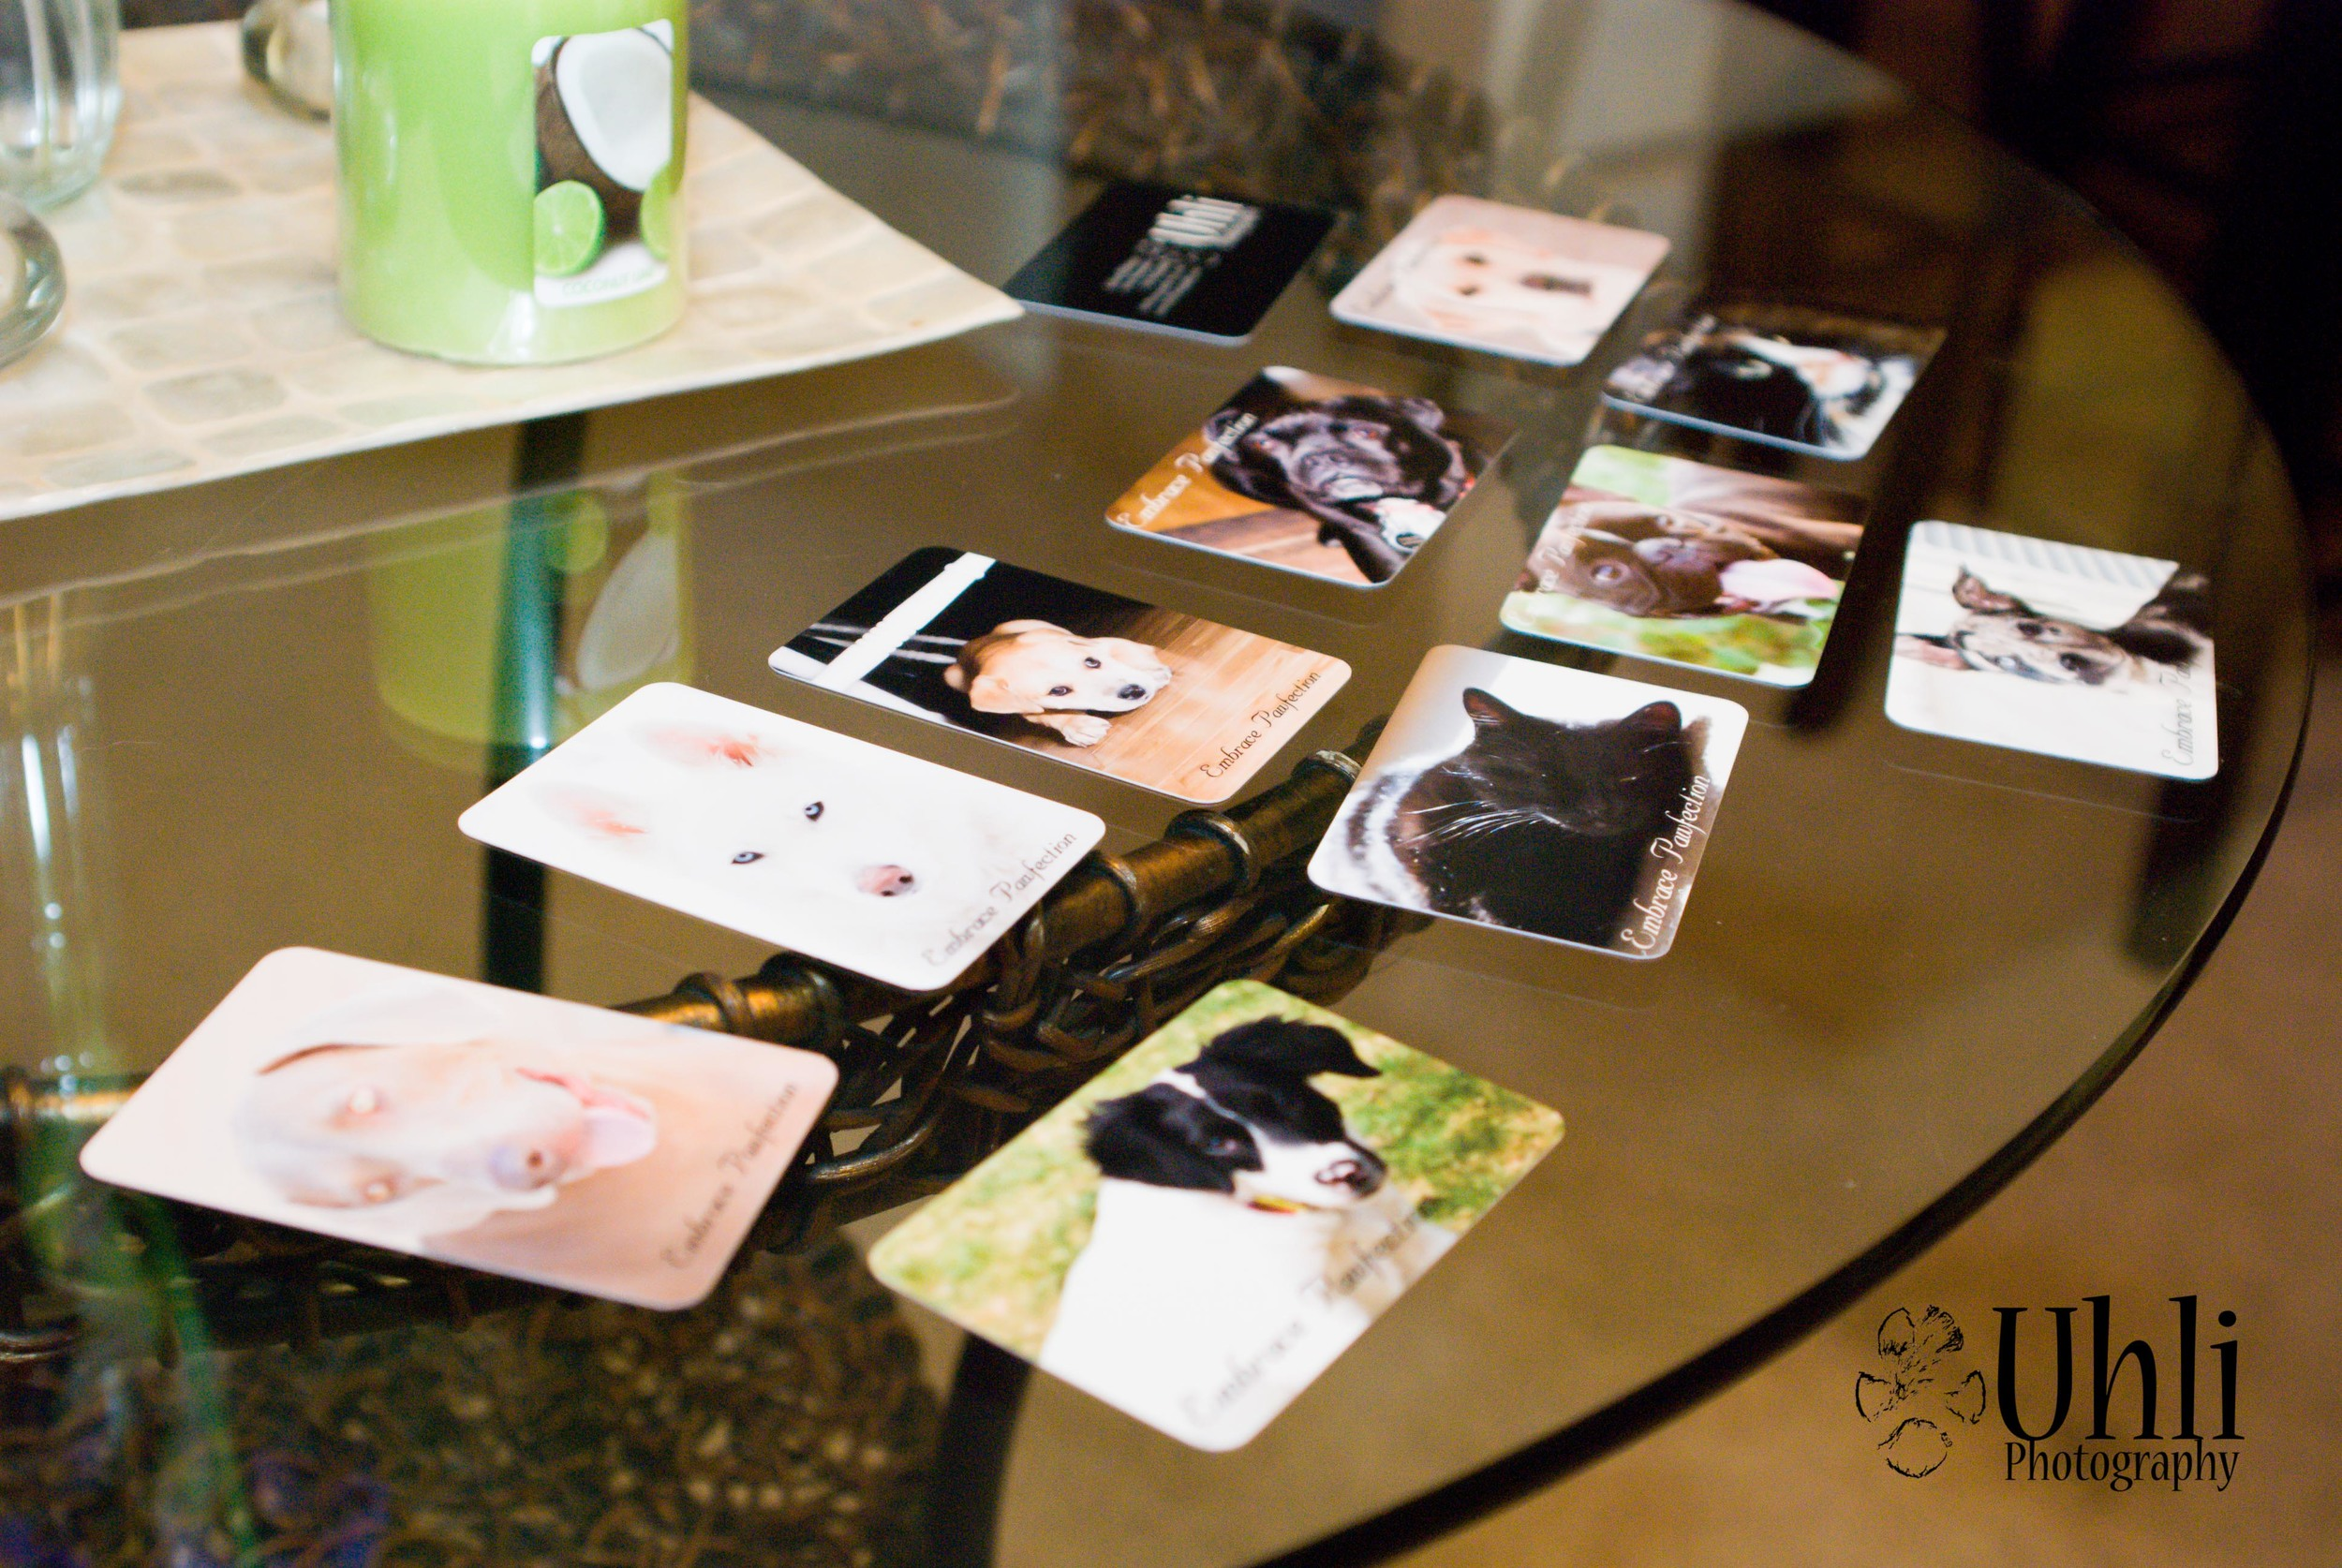 6.7.13 - New Uhli Photography Business cards. Very excited!